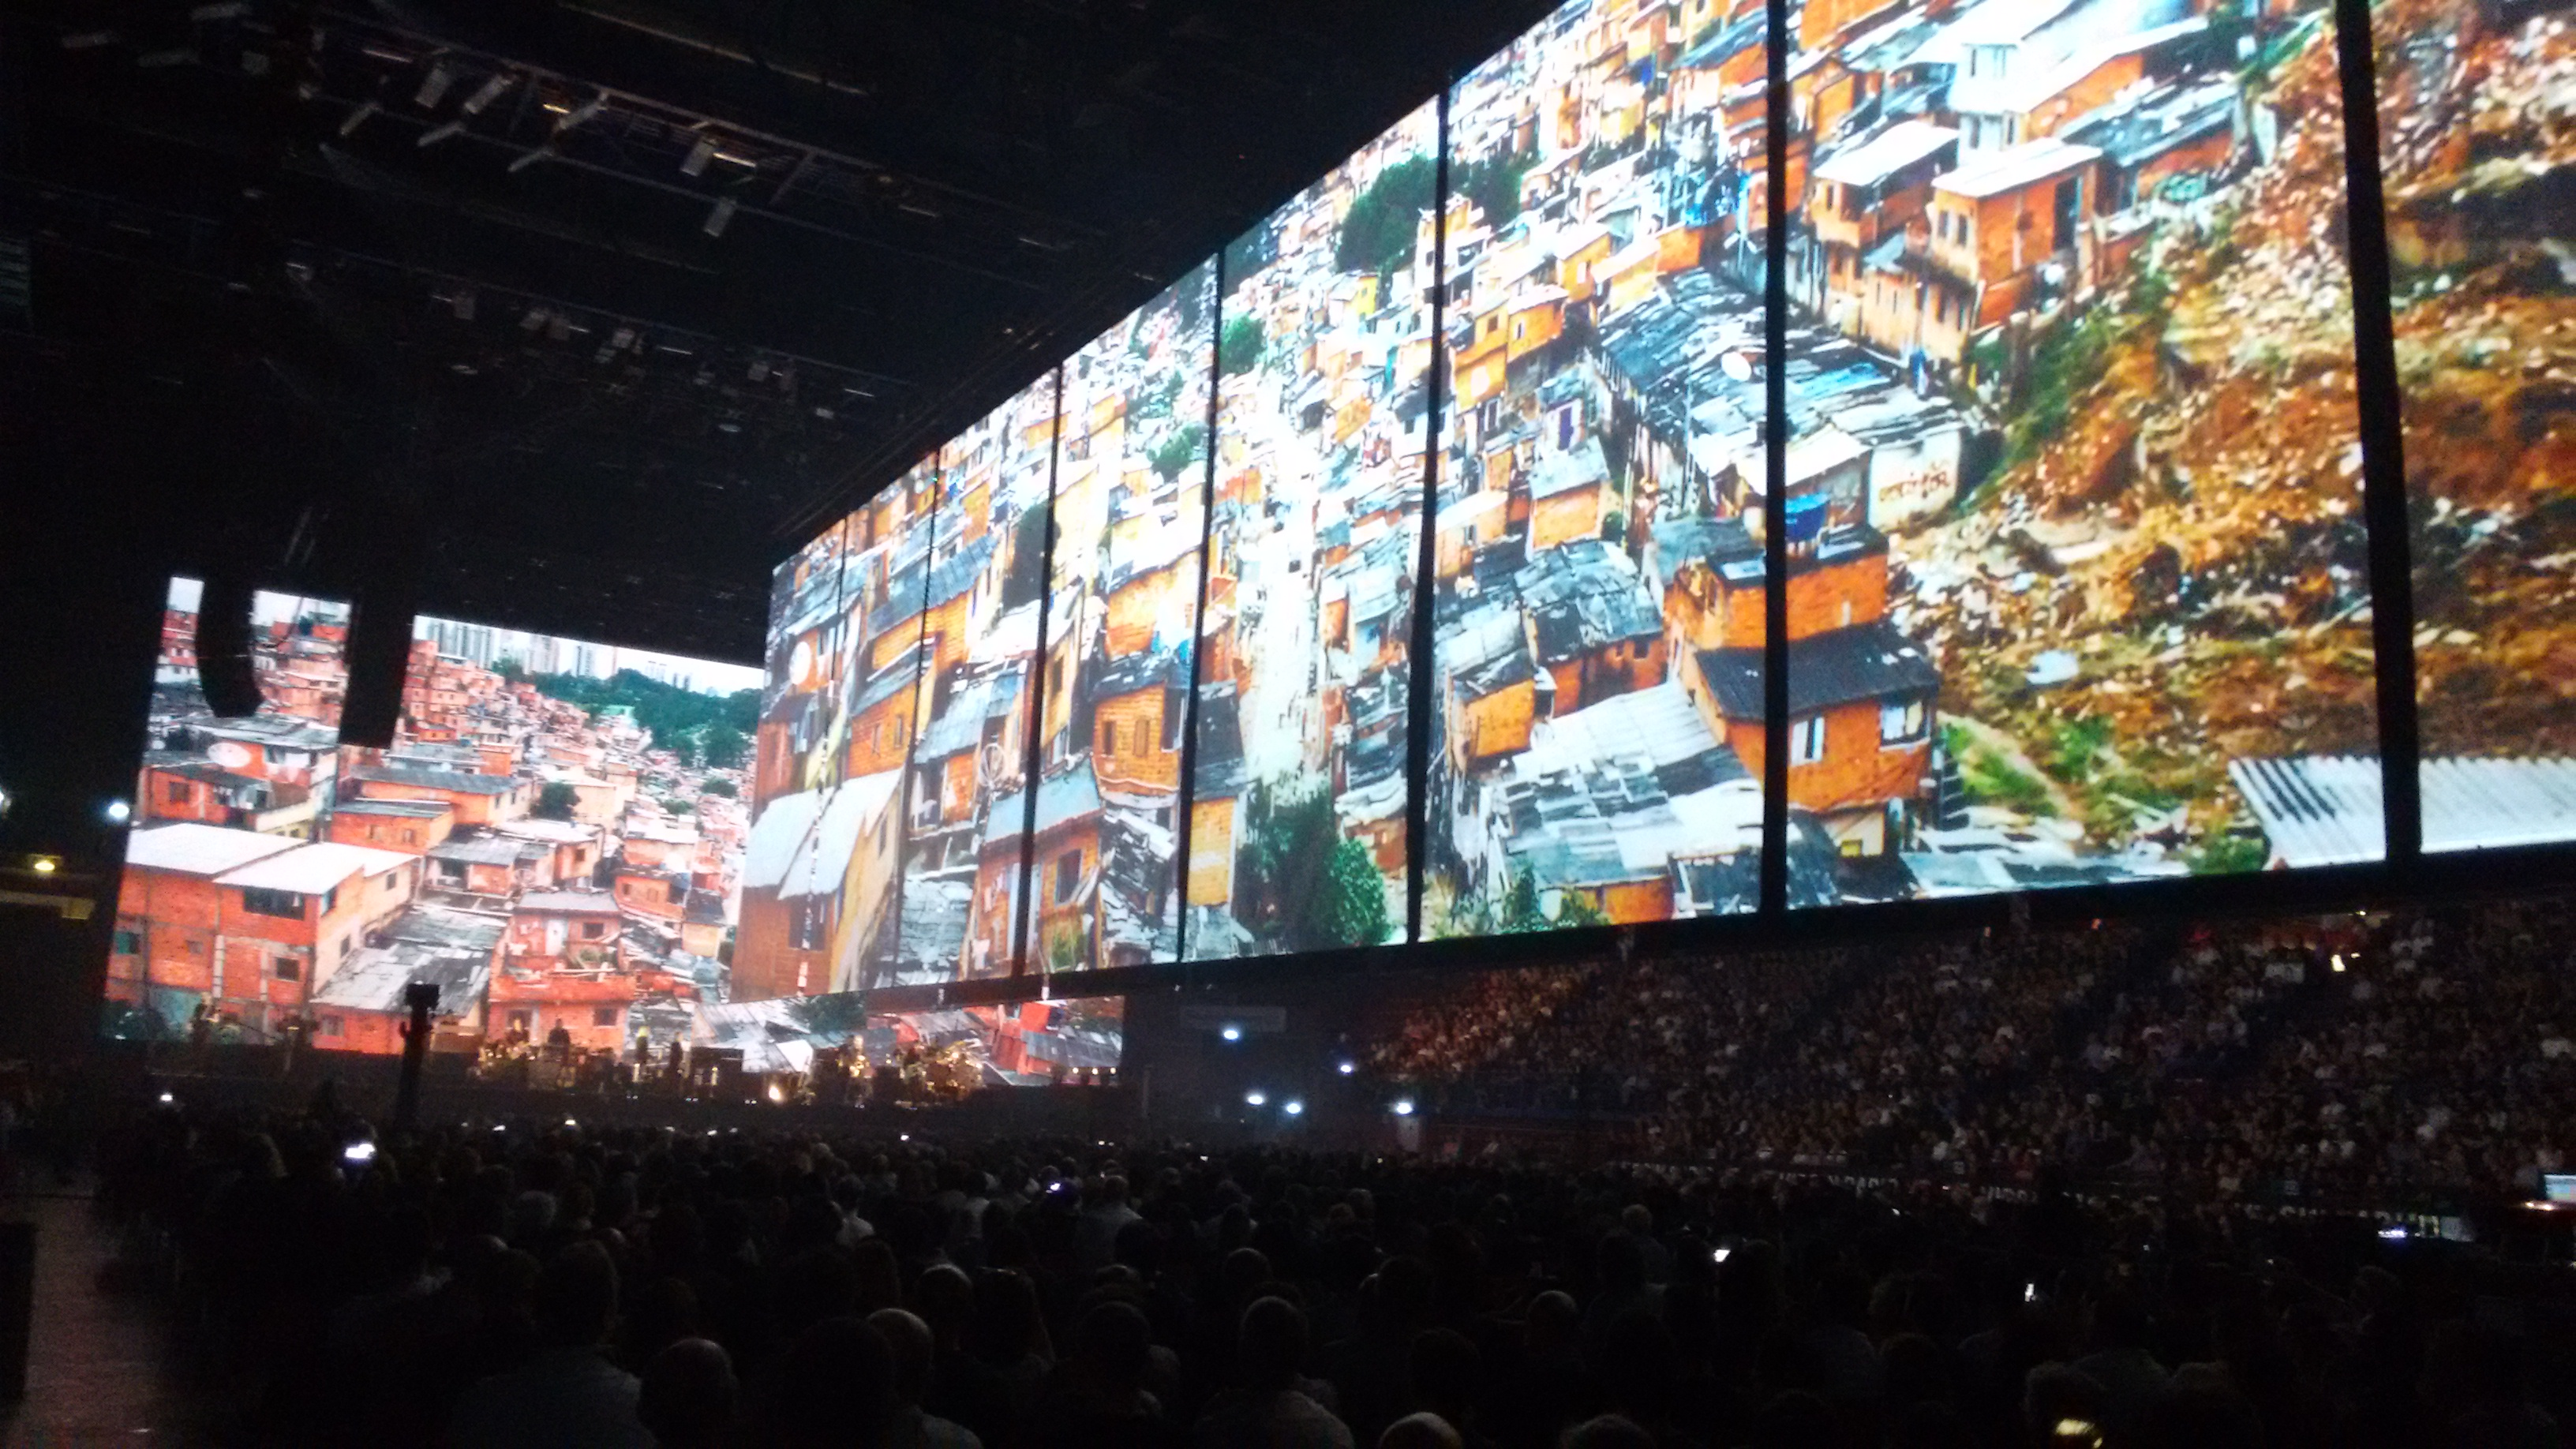 Roger Waters US+THEM TOUR 2018 Milano Mediolanum Forum Assago 17 aprile 2018